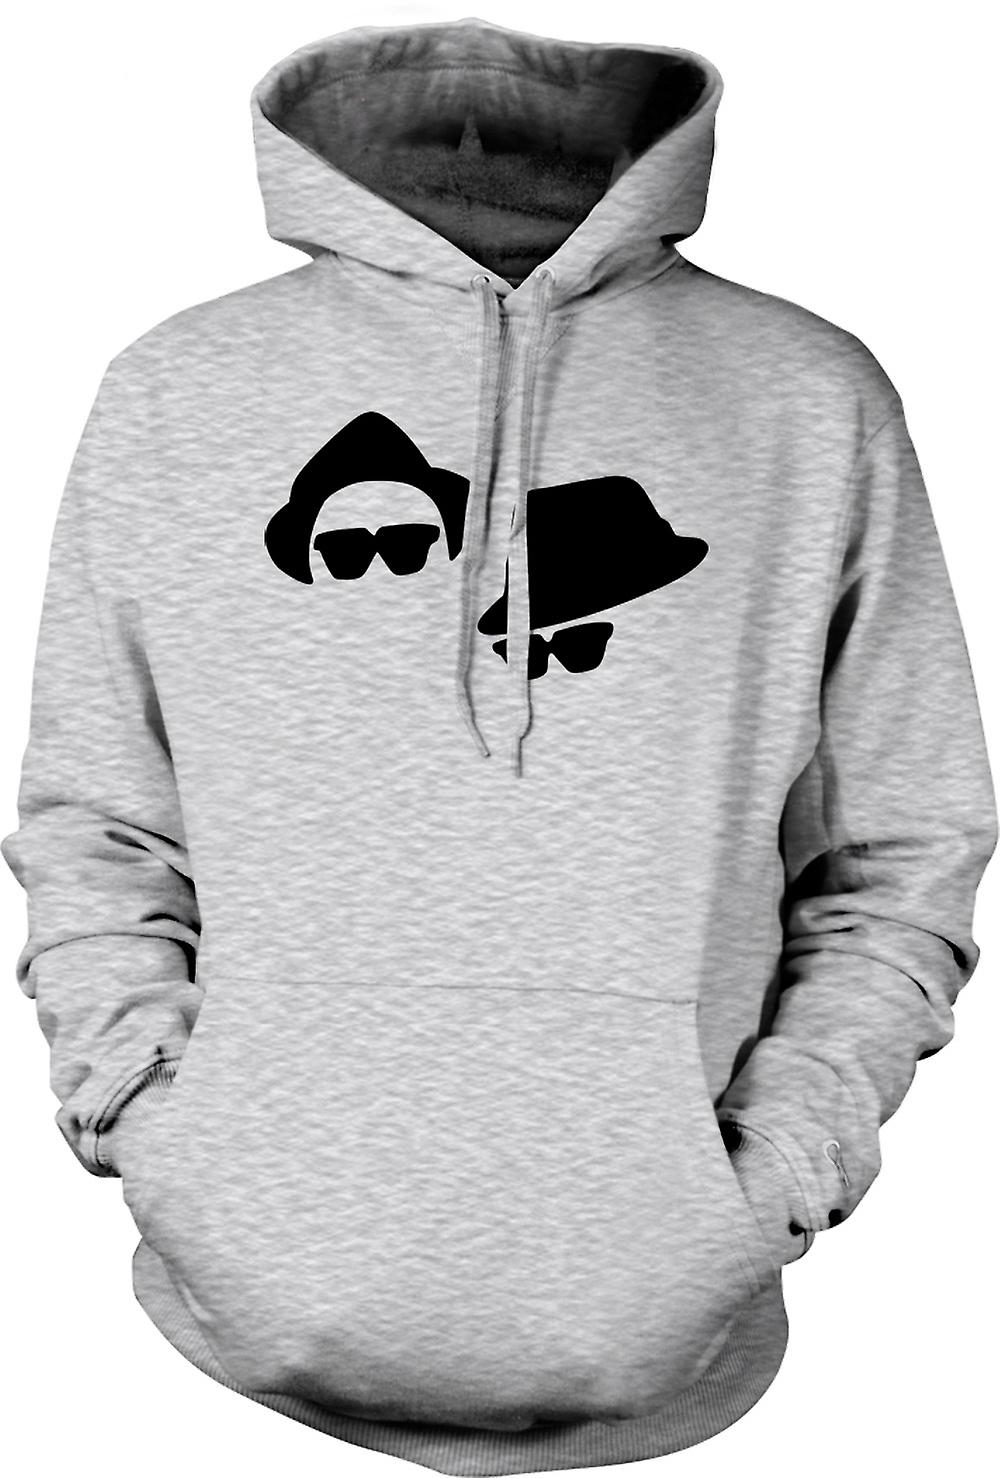 Mens Hoodie - Blues Brothers Faces